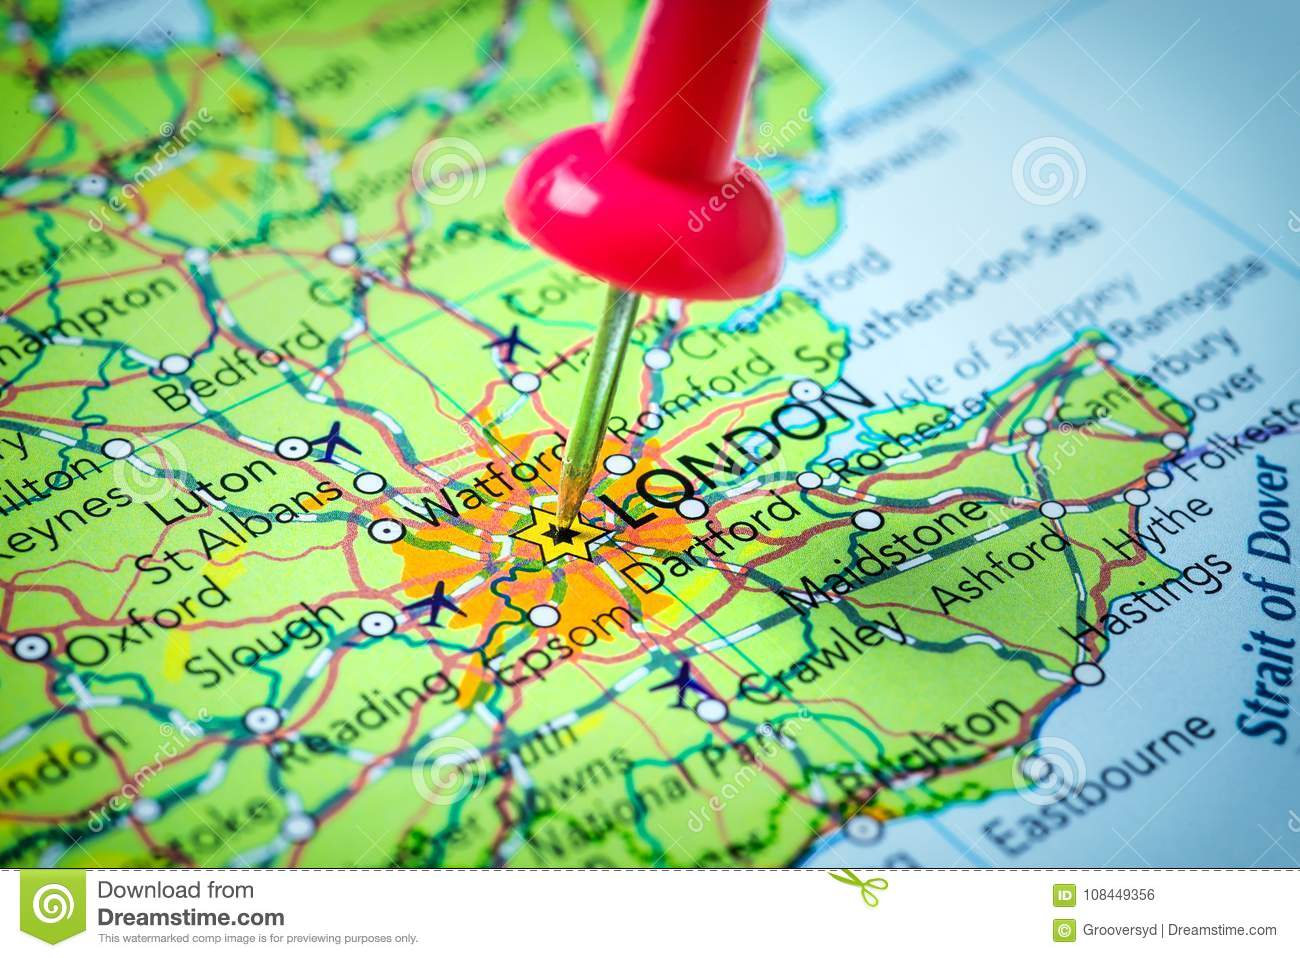 London In United Kingdom Pinned On A Map Stock Photo Image Of